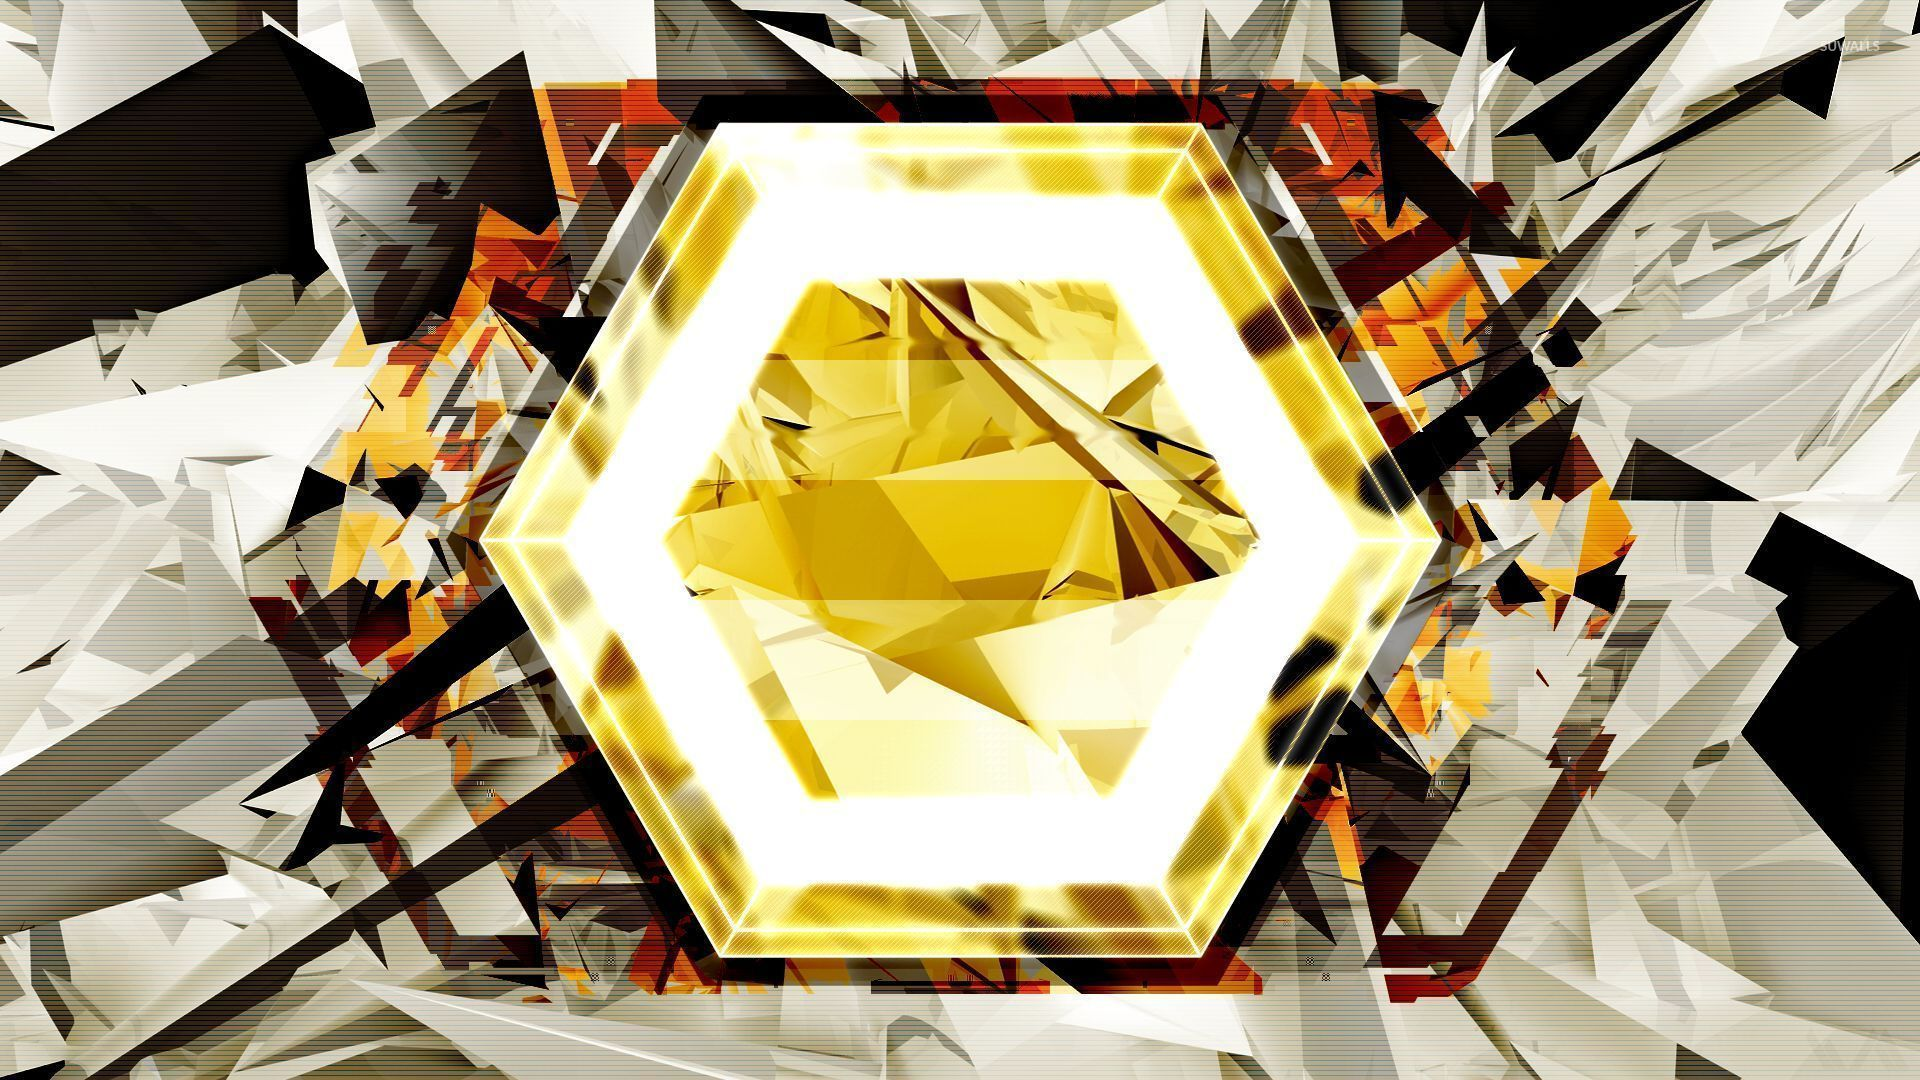 Fantastic Wallpaper Mountain Hexagon - gold-hexagon-26597-1920x1080  Graphic_682886.jpg